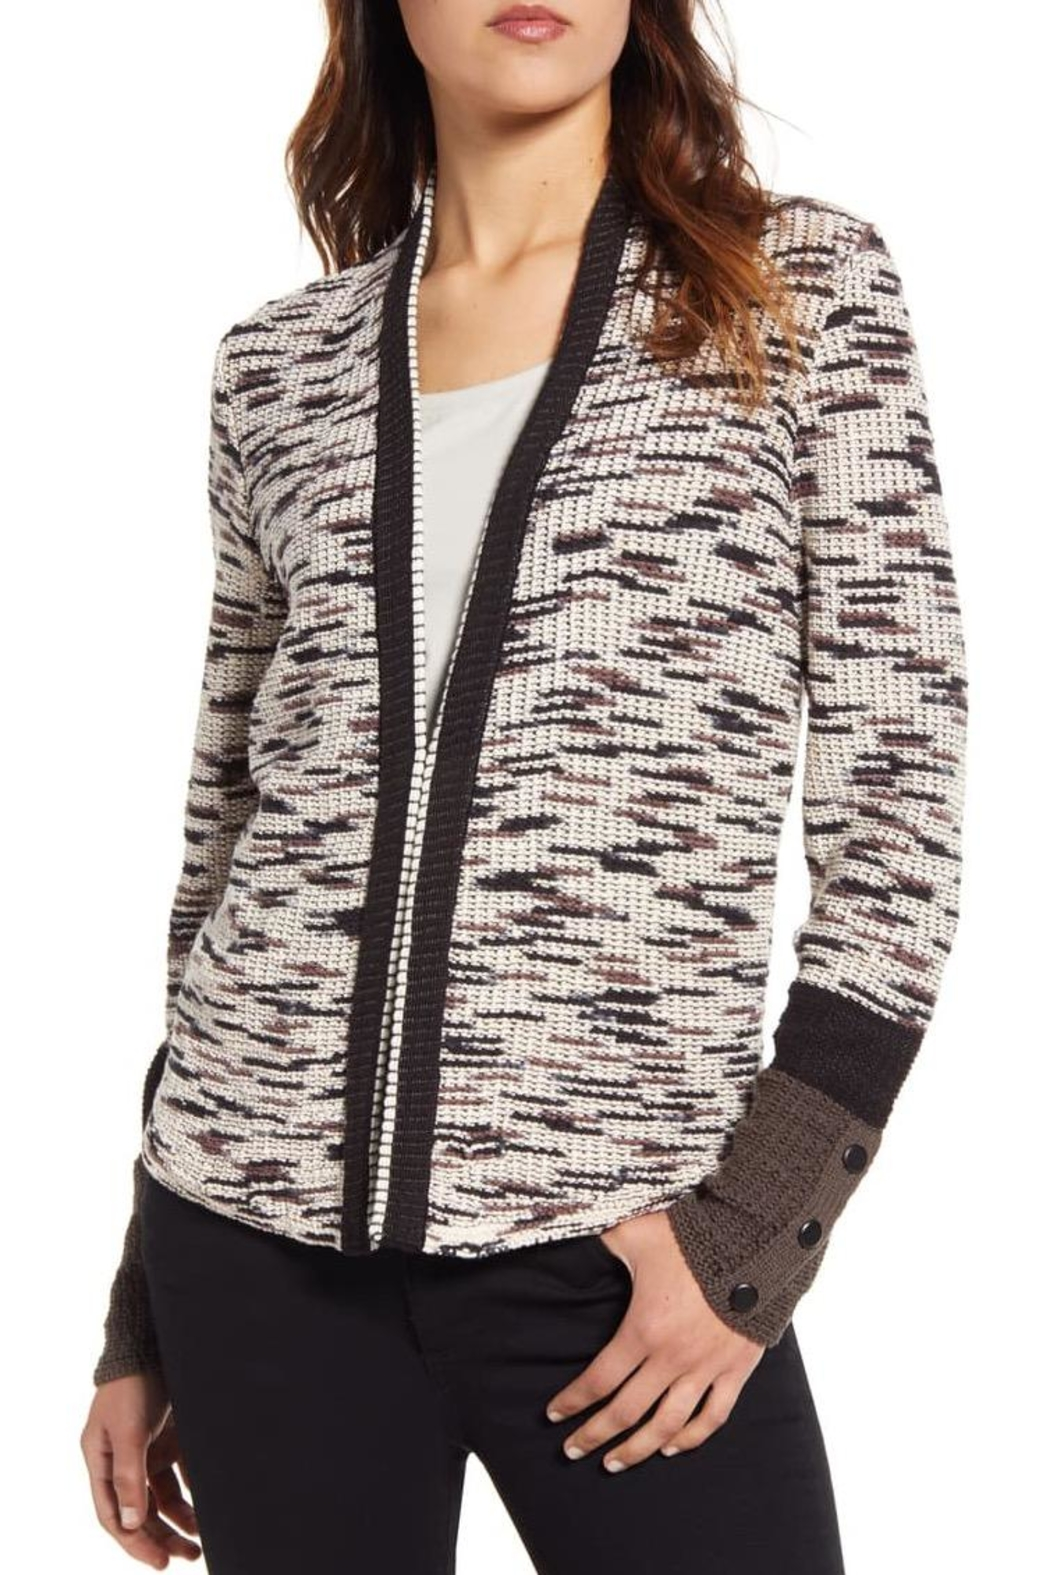 Nic + Zoe Contempory Cotton-Blend Cardigan - Main Image